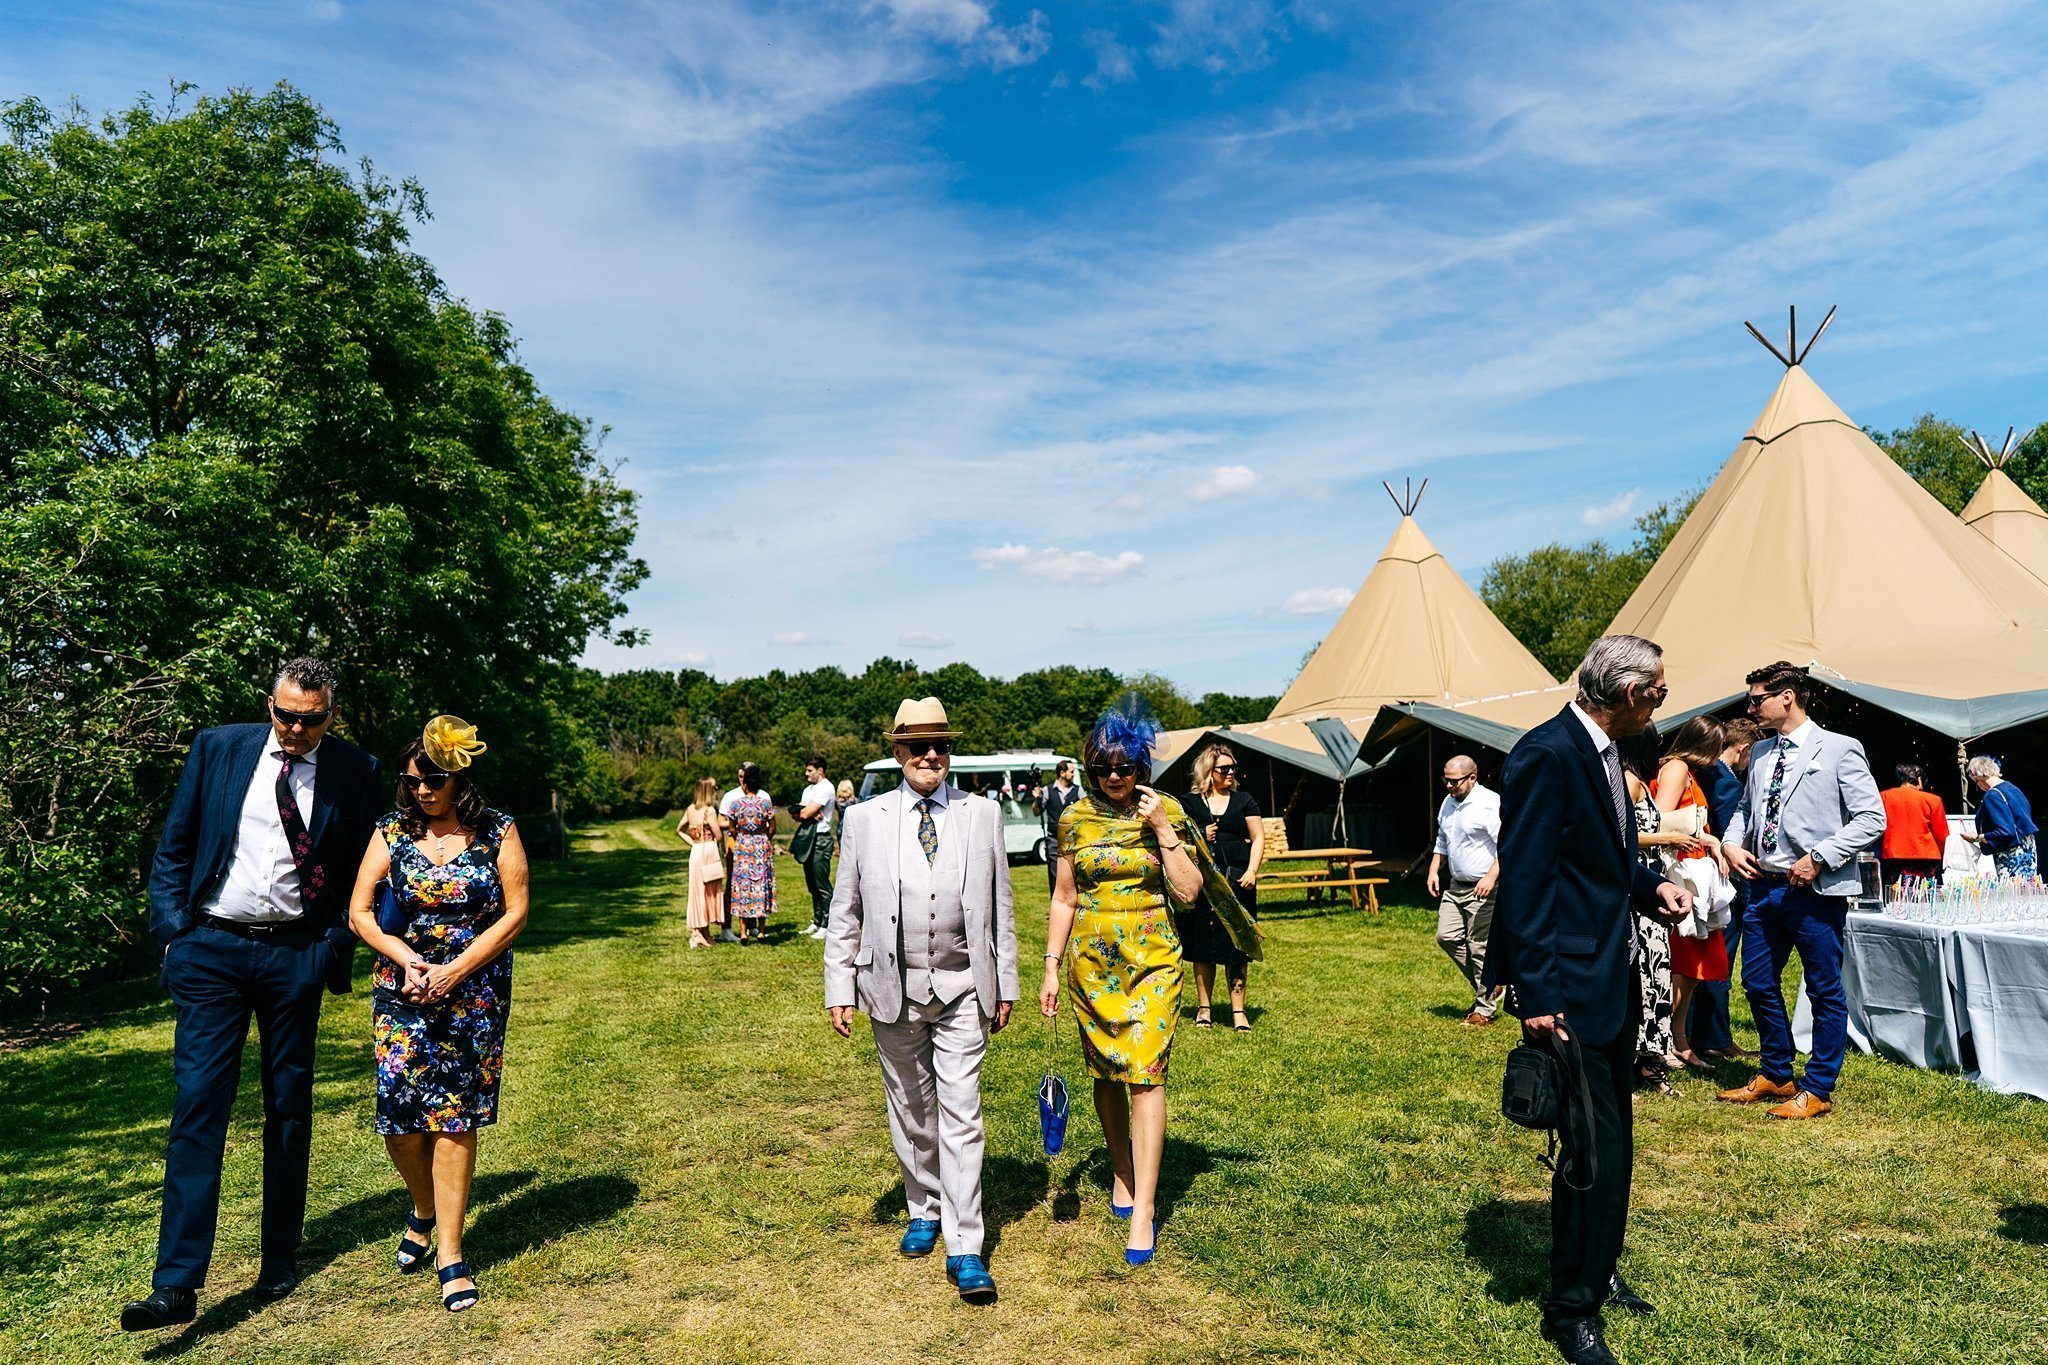 Tipi in field at Escheat Farm Wedding